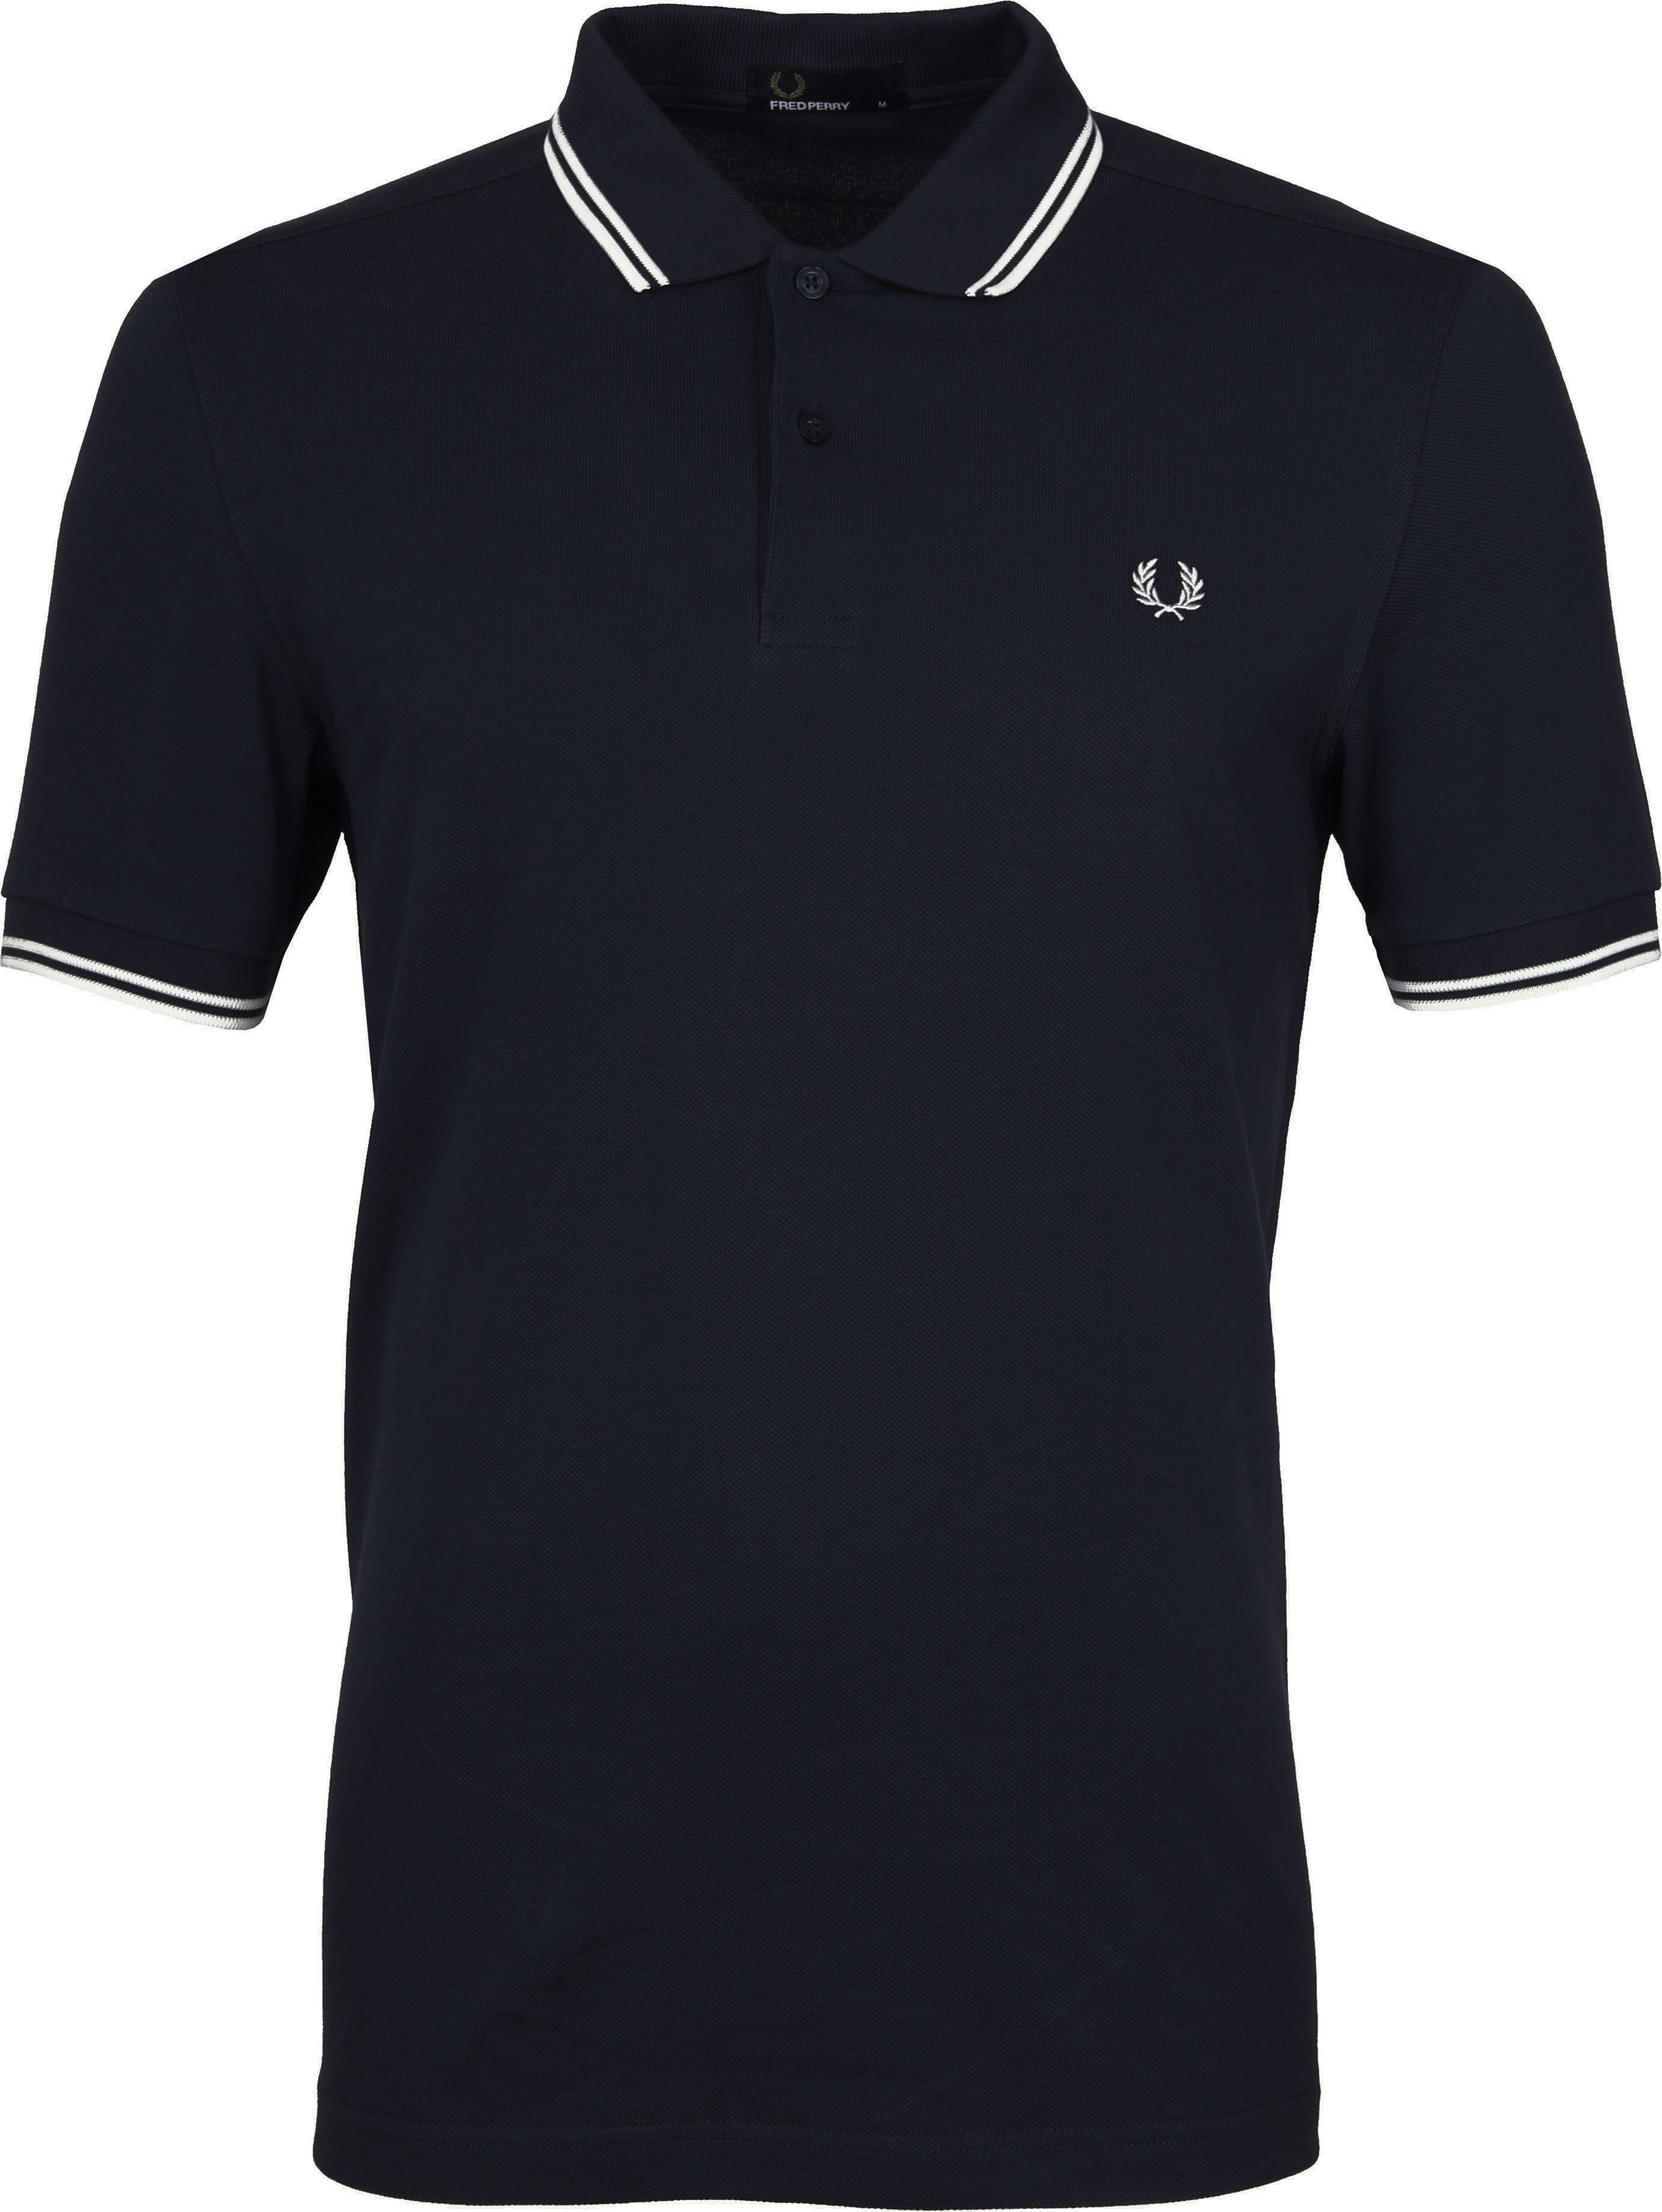 Fred Perry Polo Shirt Navy White foto 0